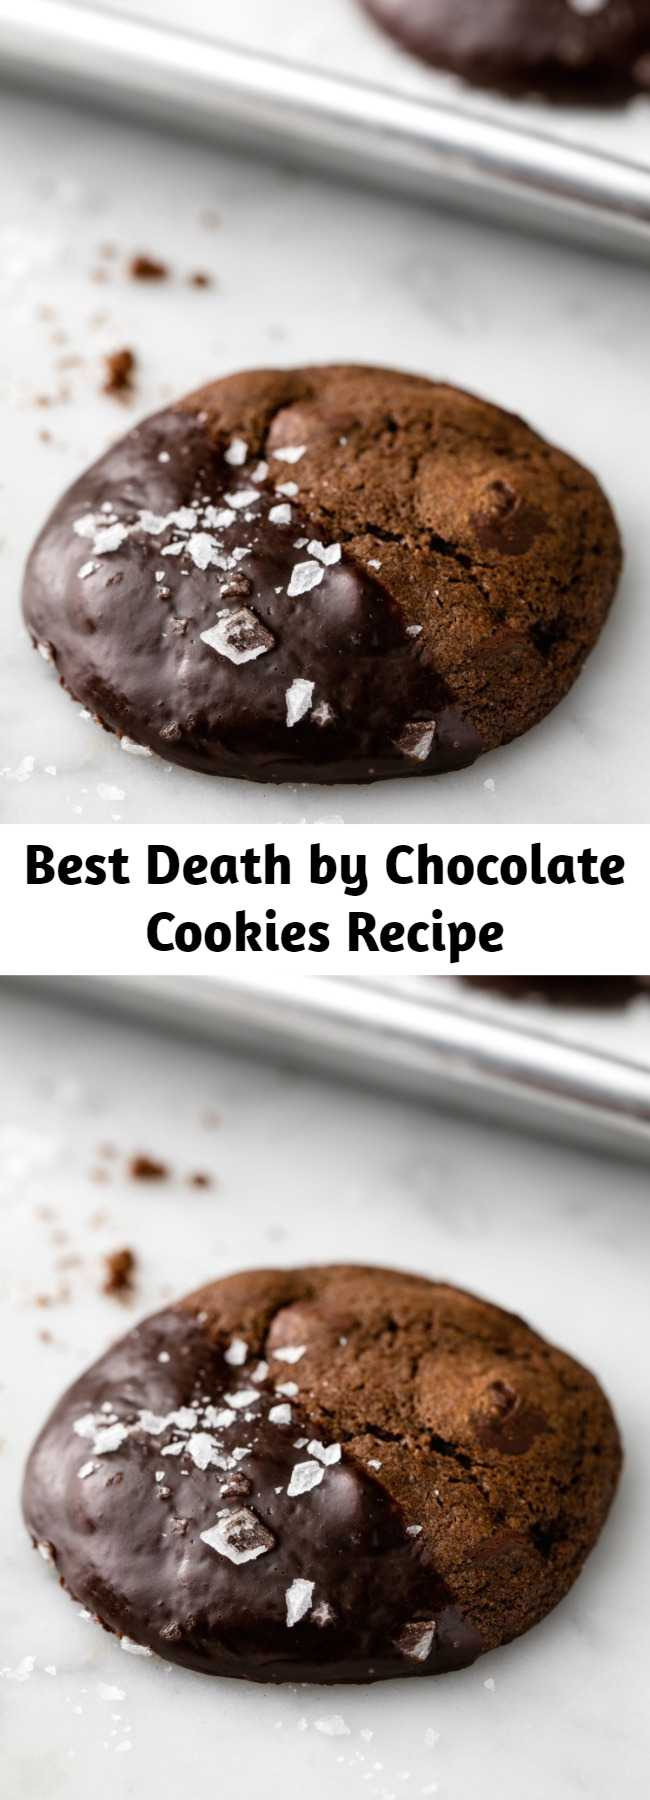 Best Death by Chocolate Cookies Recipe - You've been warned—these death by chocolate cookies are deadly.